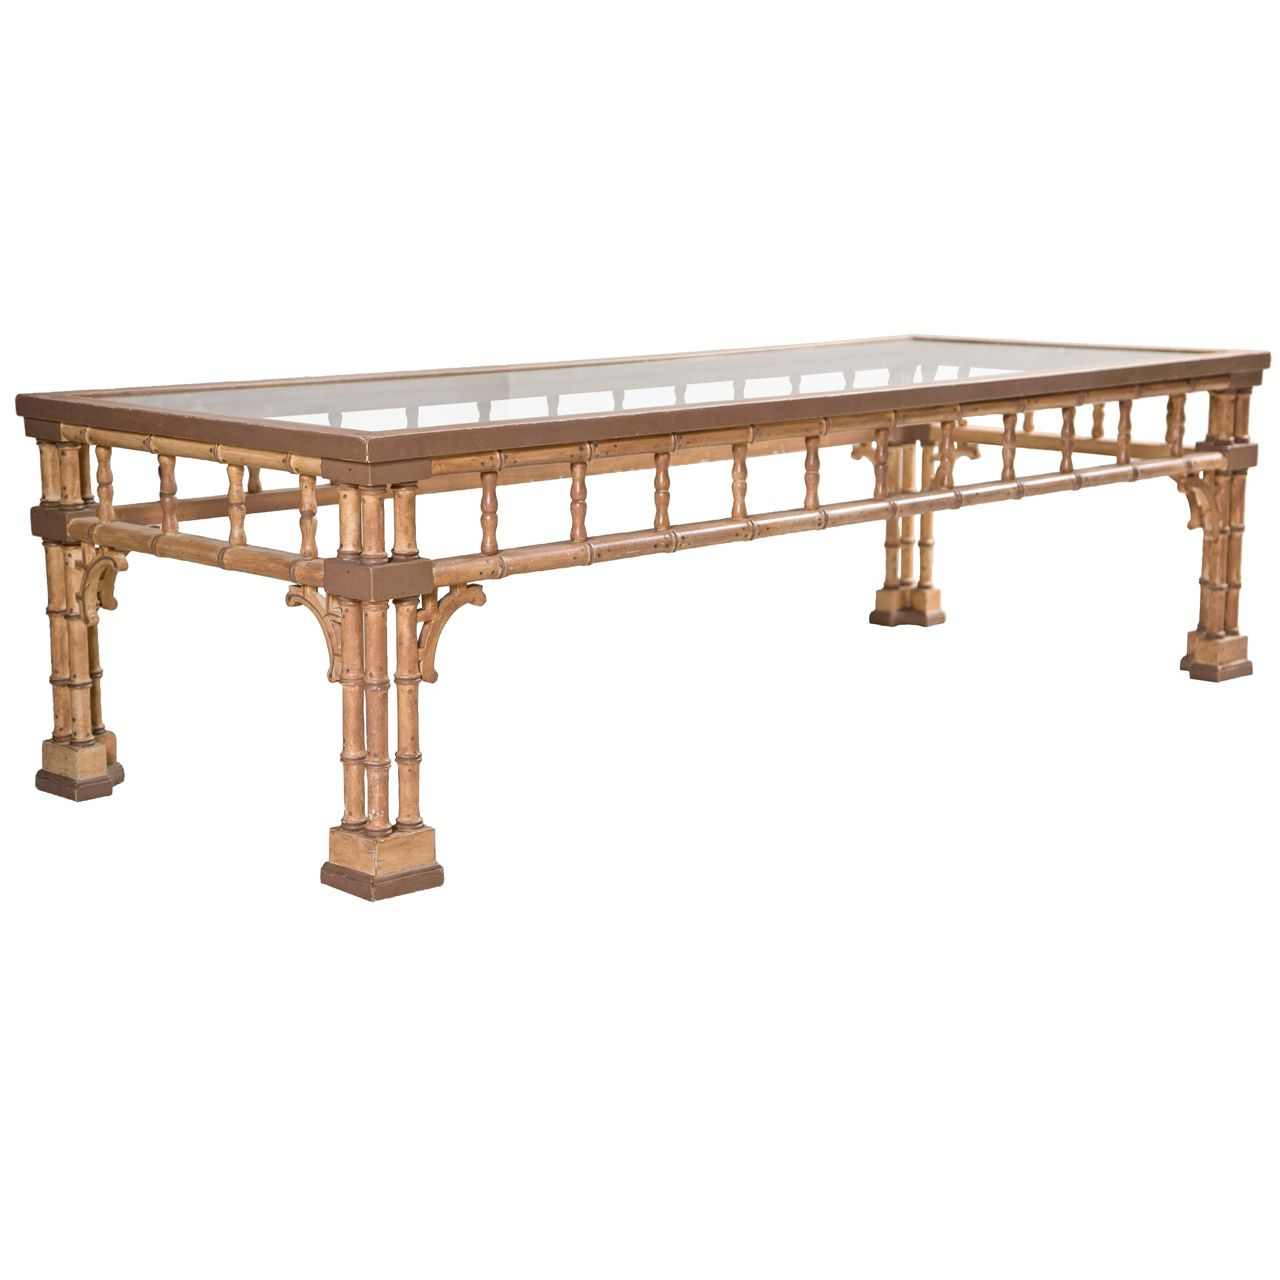 Faux Bamboo Coffee Table With Glass Top Bamboo Coffee Table Glass Top Coffee Table Large Square Coffee Table [ 1280 x 1280 Pixel ]